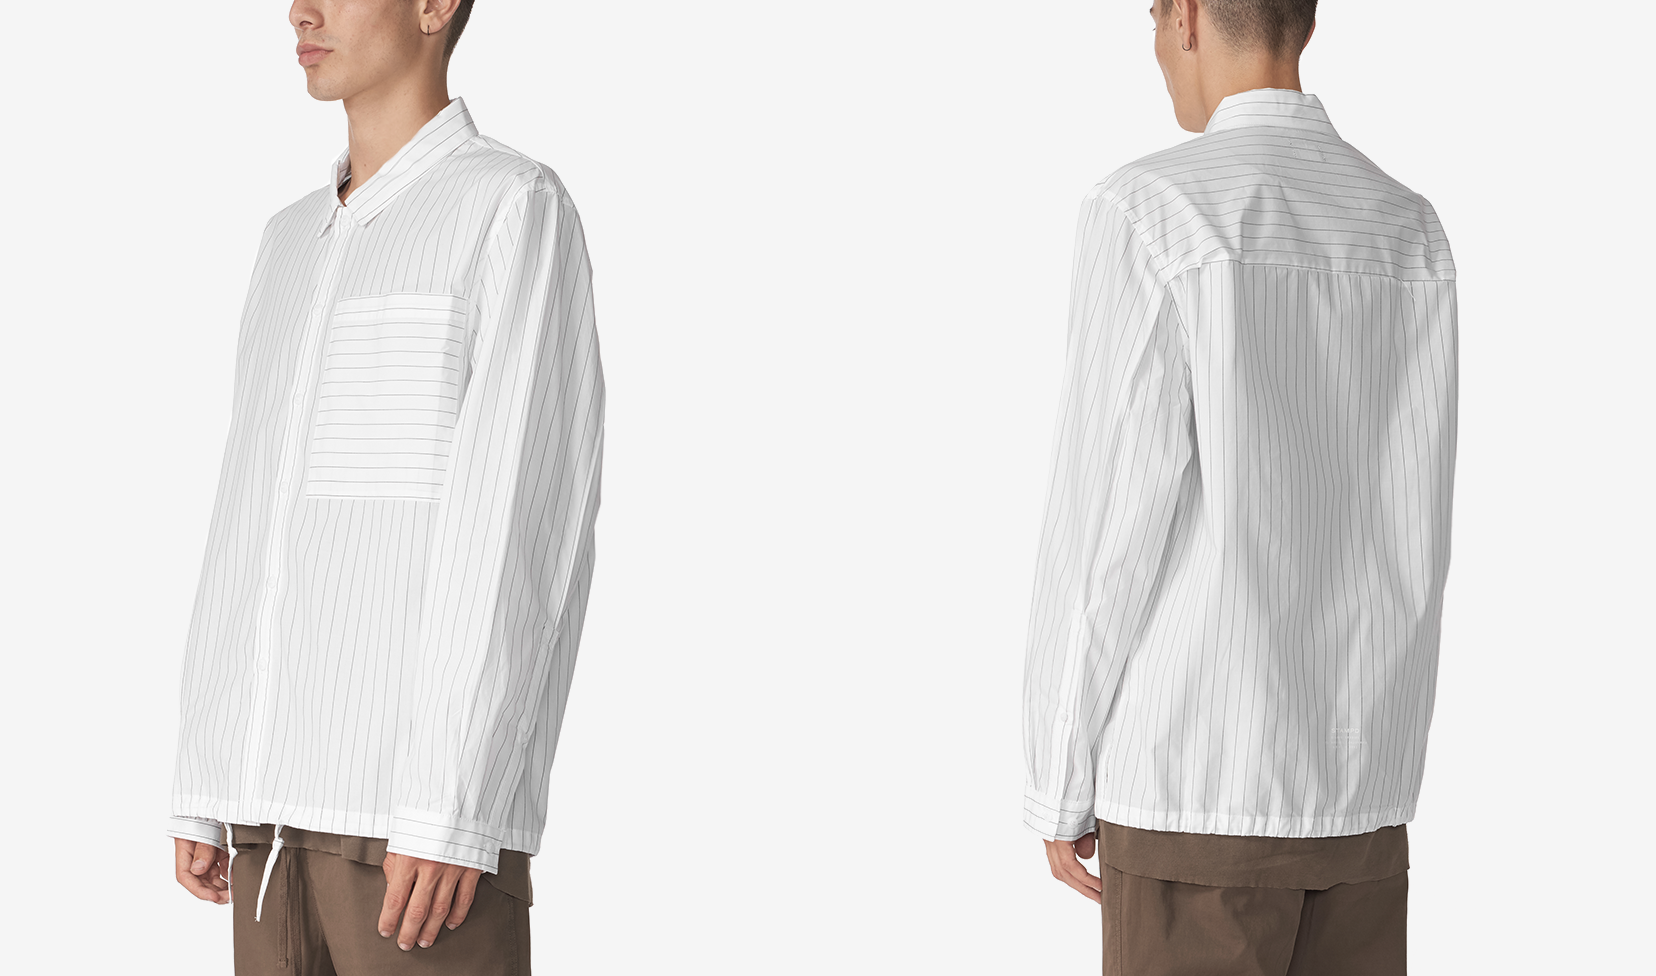 Lift Overshirt